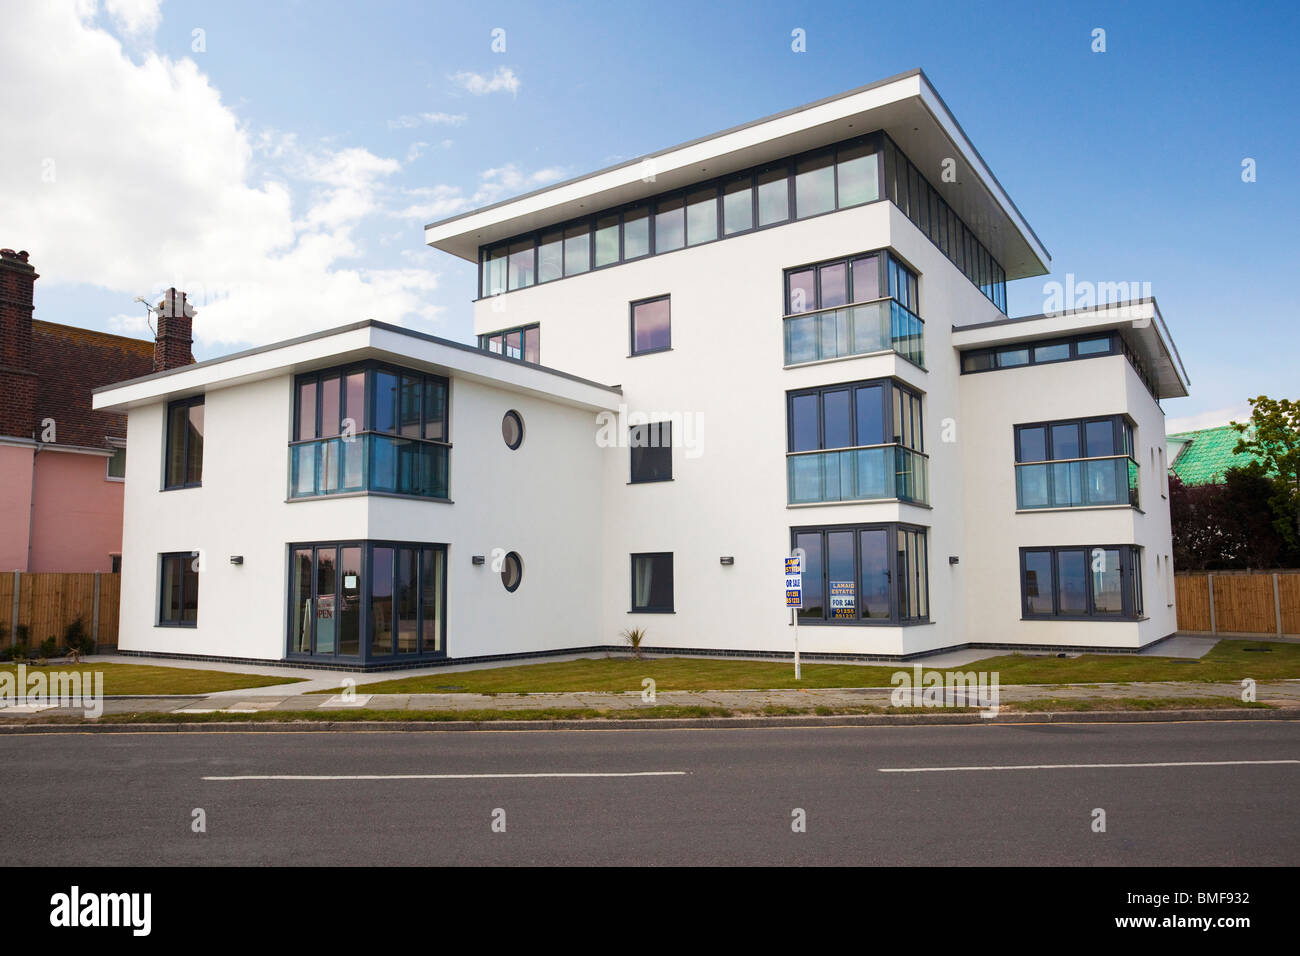 Good Modern Art Deco Stil Haus Am Frinton On Sea, Essex, UK